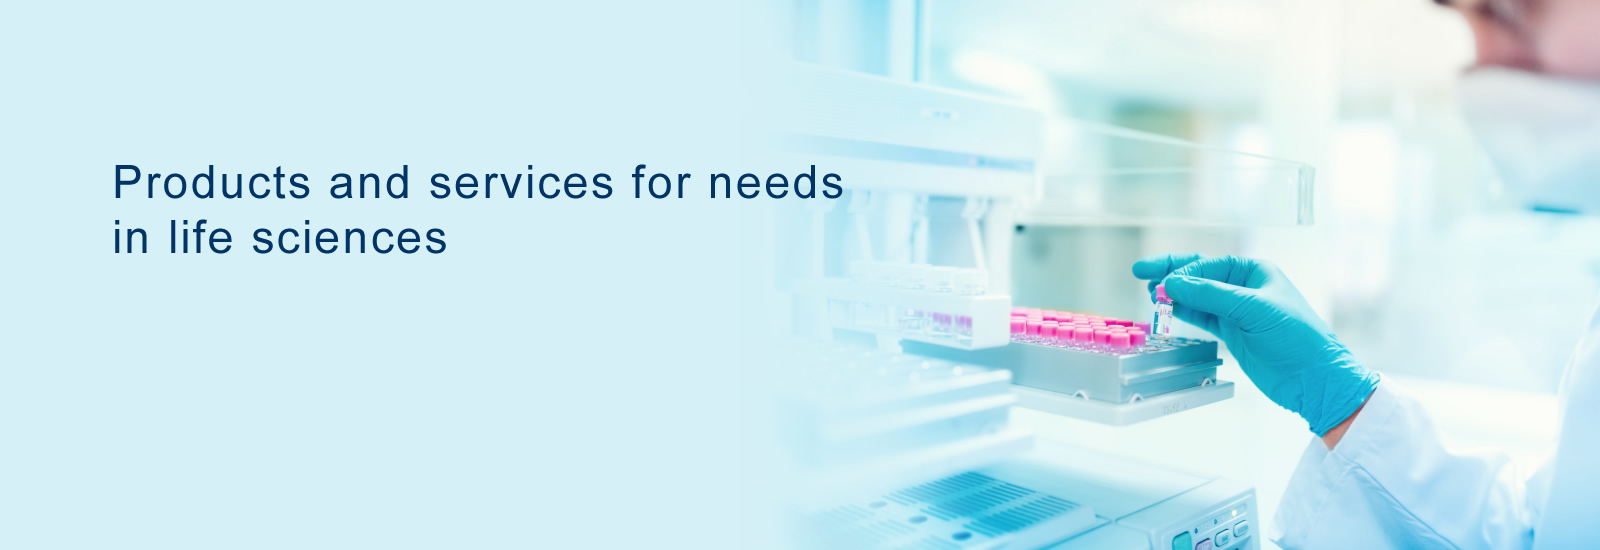 Products and services for needs in life sciences